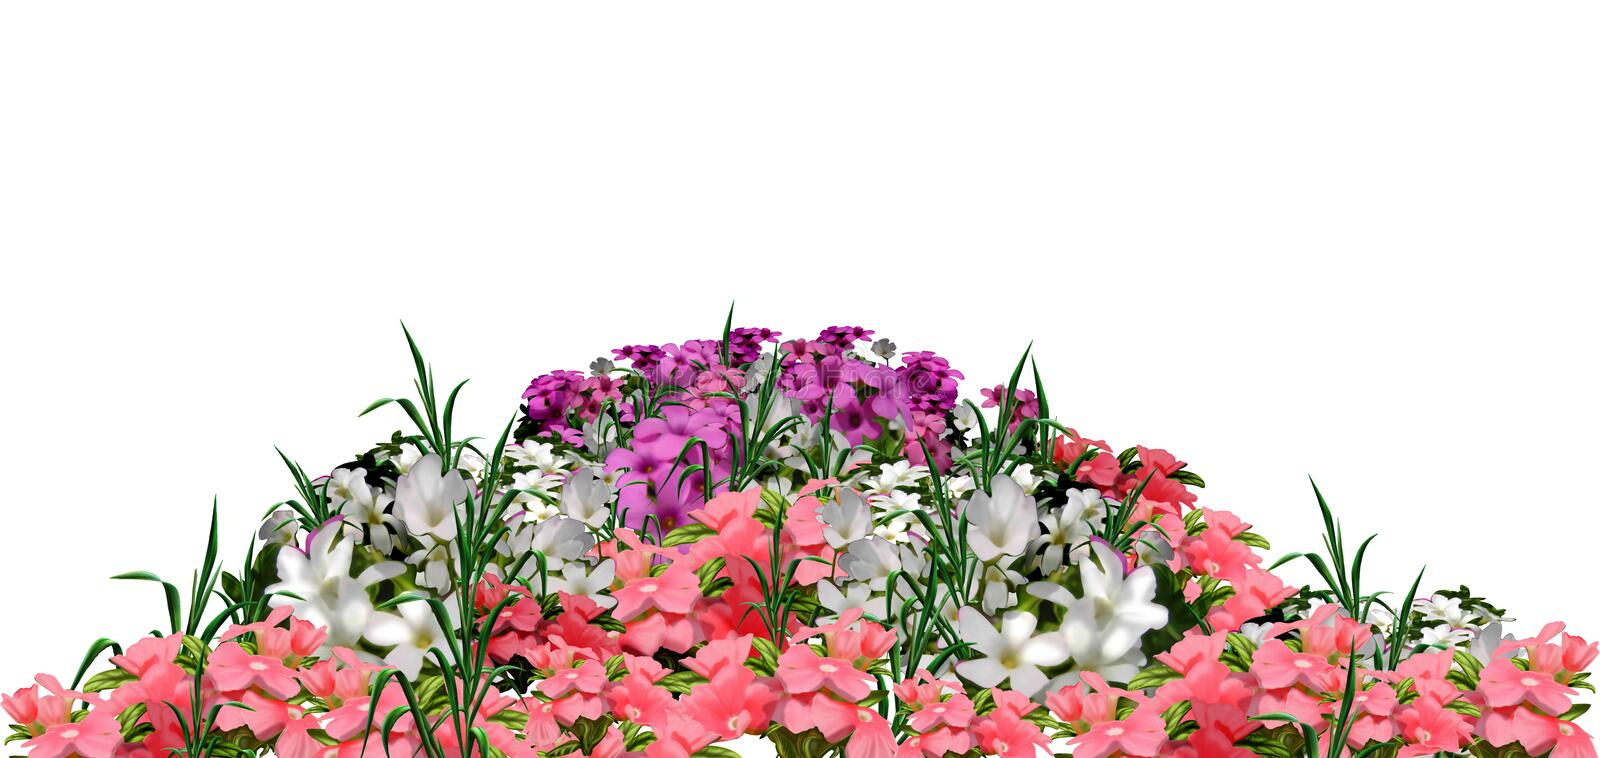 Download Beautiful spring flowers stock image. Illustration of bouquet - 66831935